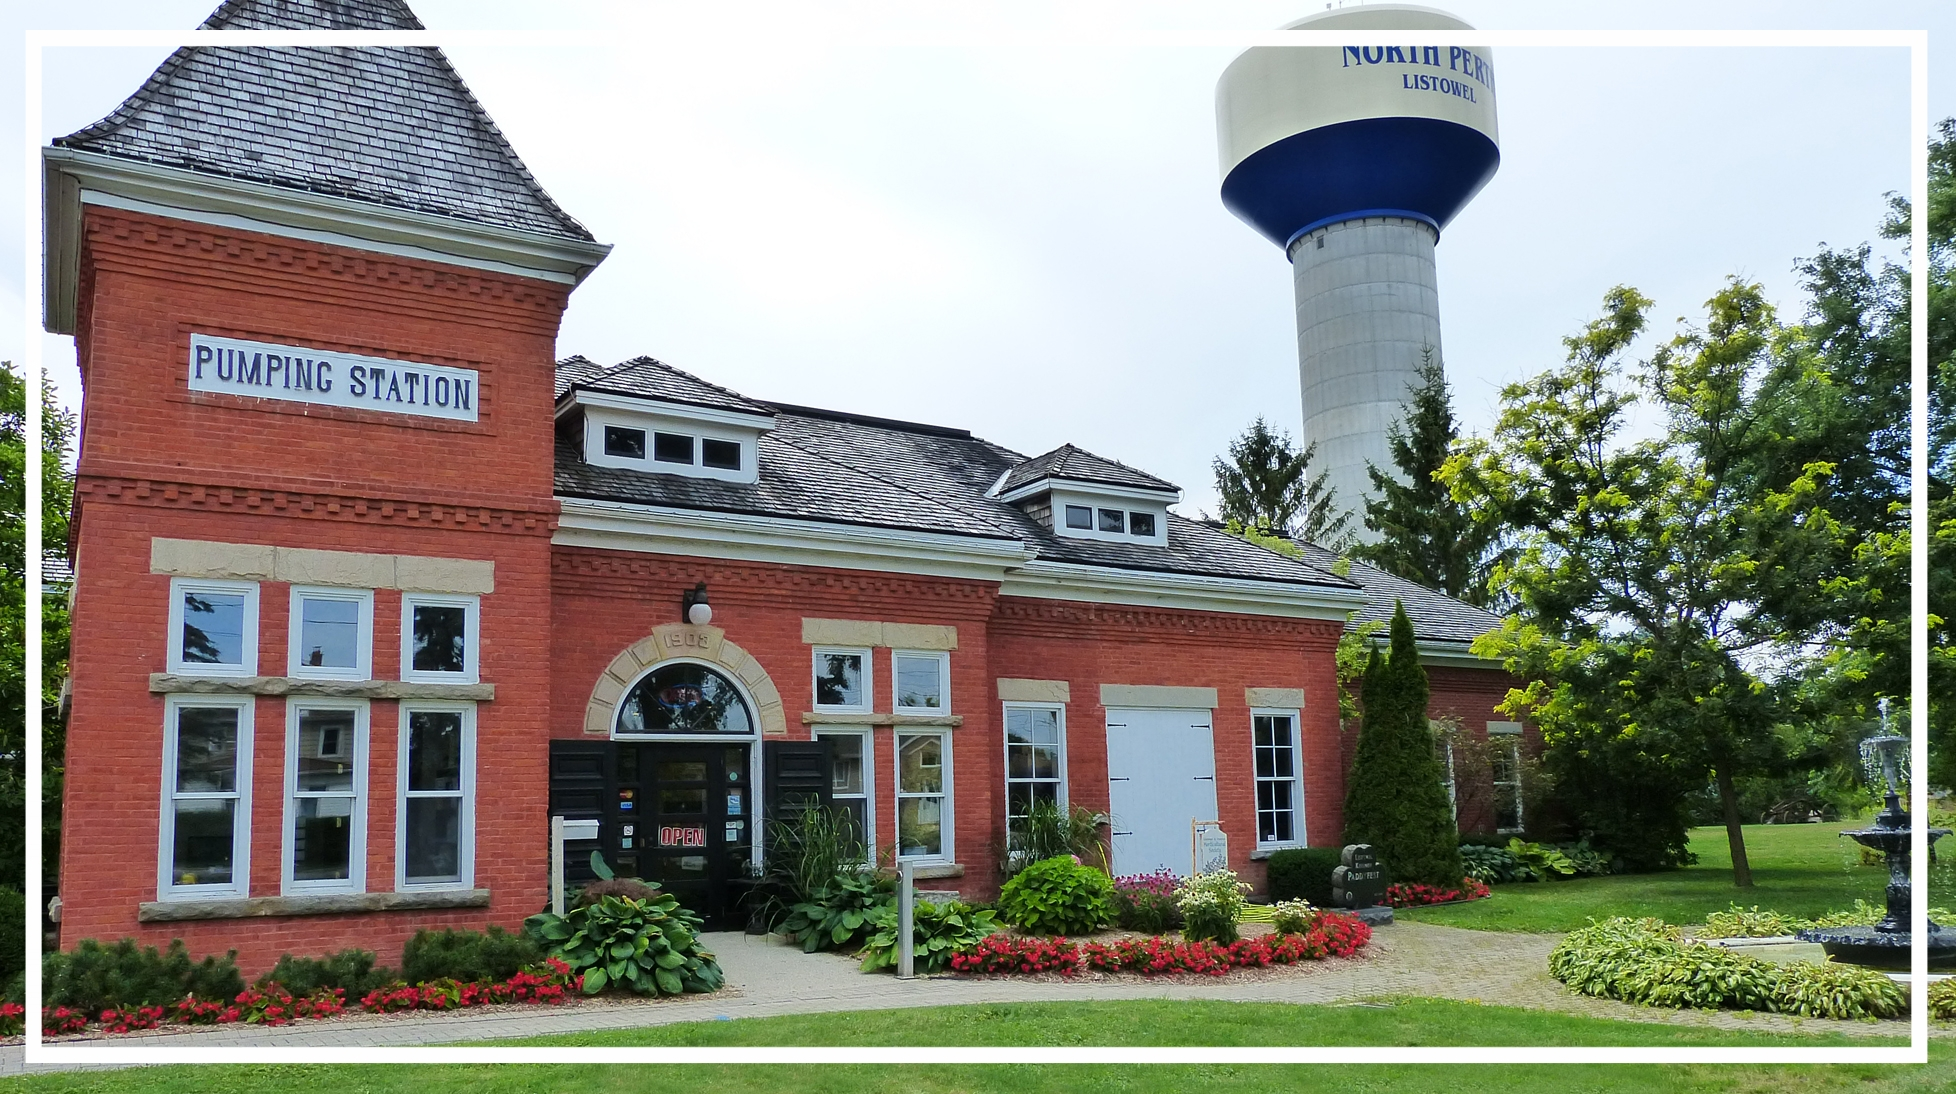 North Perth Chamber of Commerce - Head Office in Listowel, Ontario